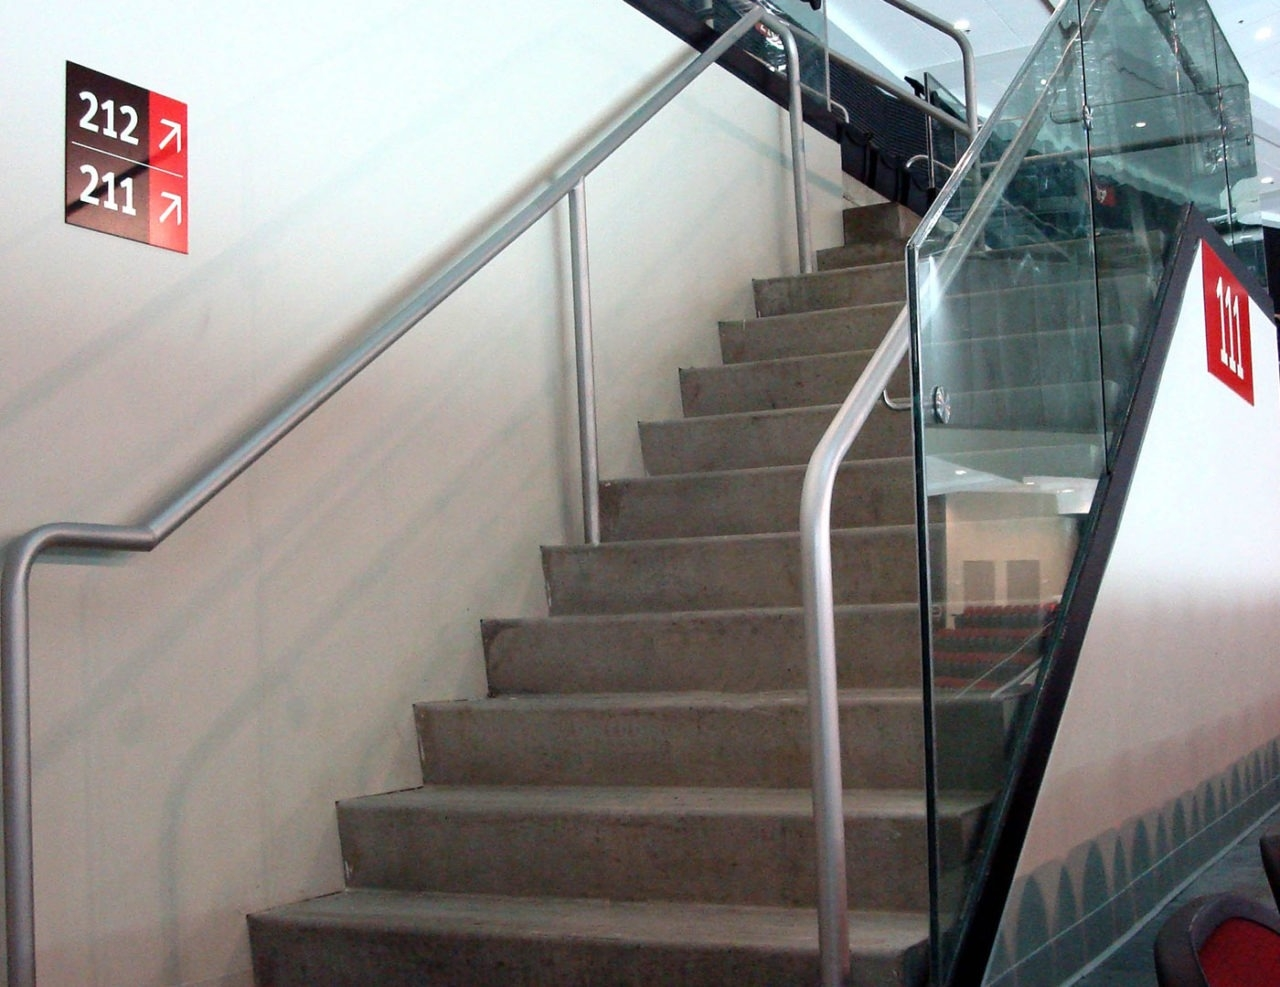 Griprail Commercial Metal Handrails Trex Commercial Products | Aluminum Railings For Steps | Verandah | Glass Railing | Pipe | Indoor | Glass Panel Wooden Handrail